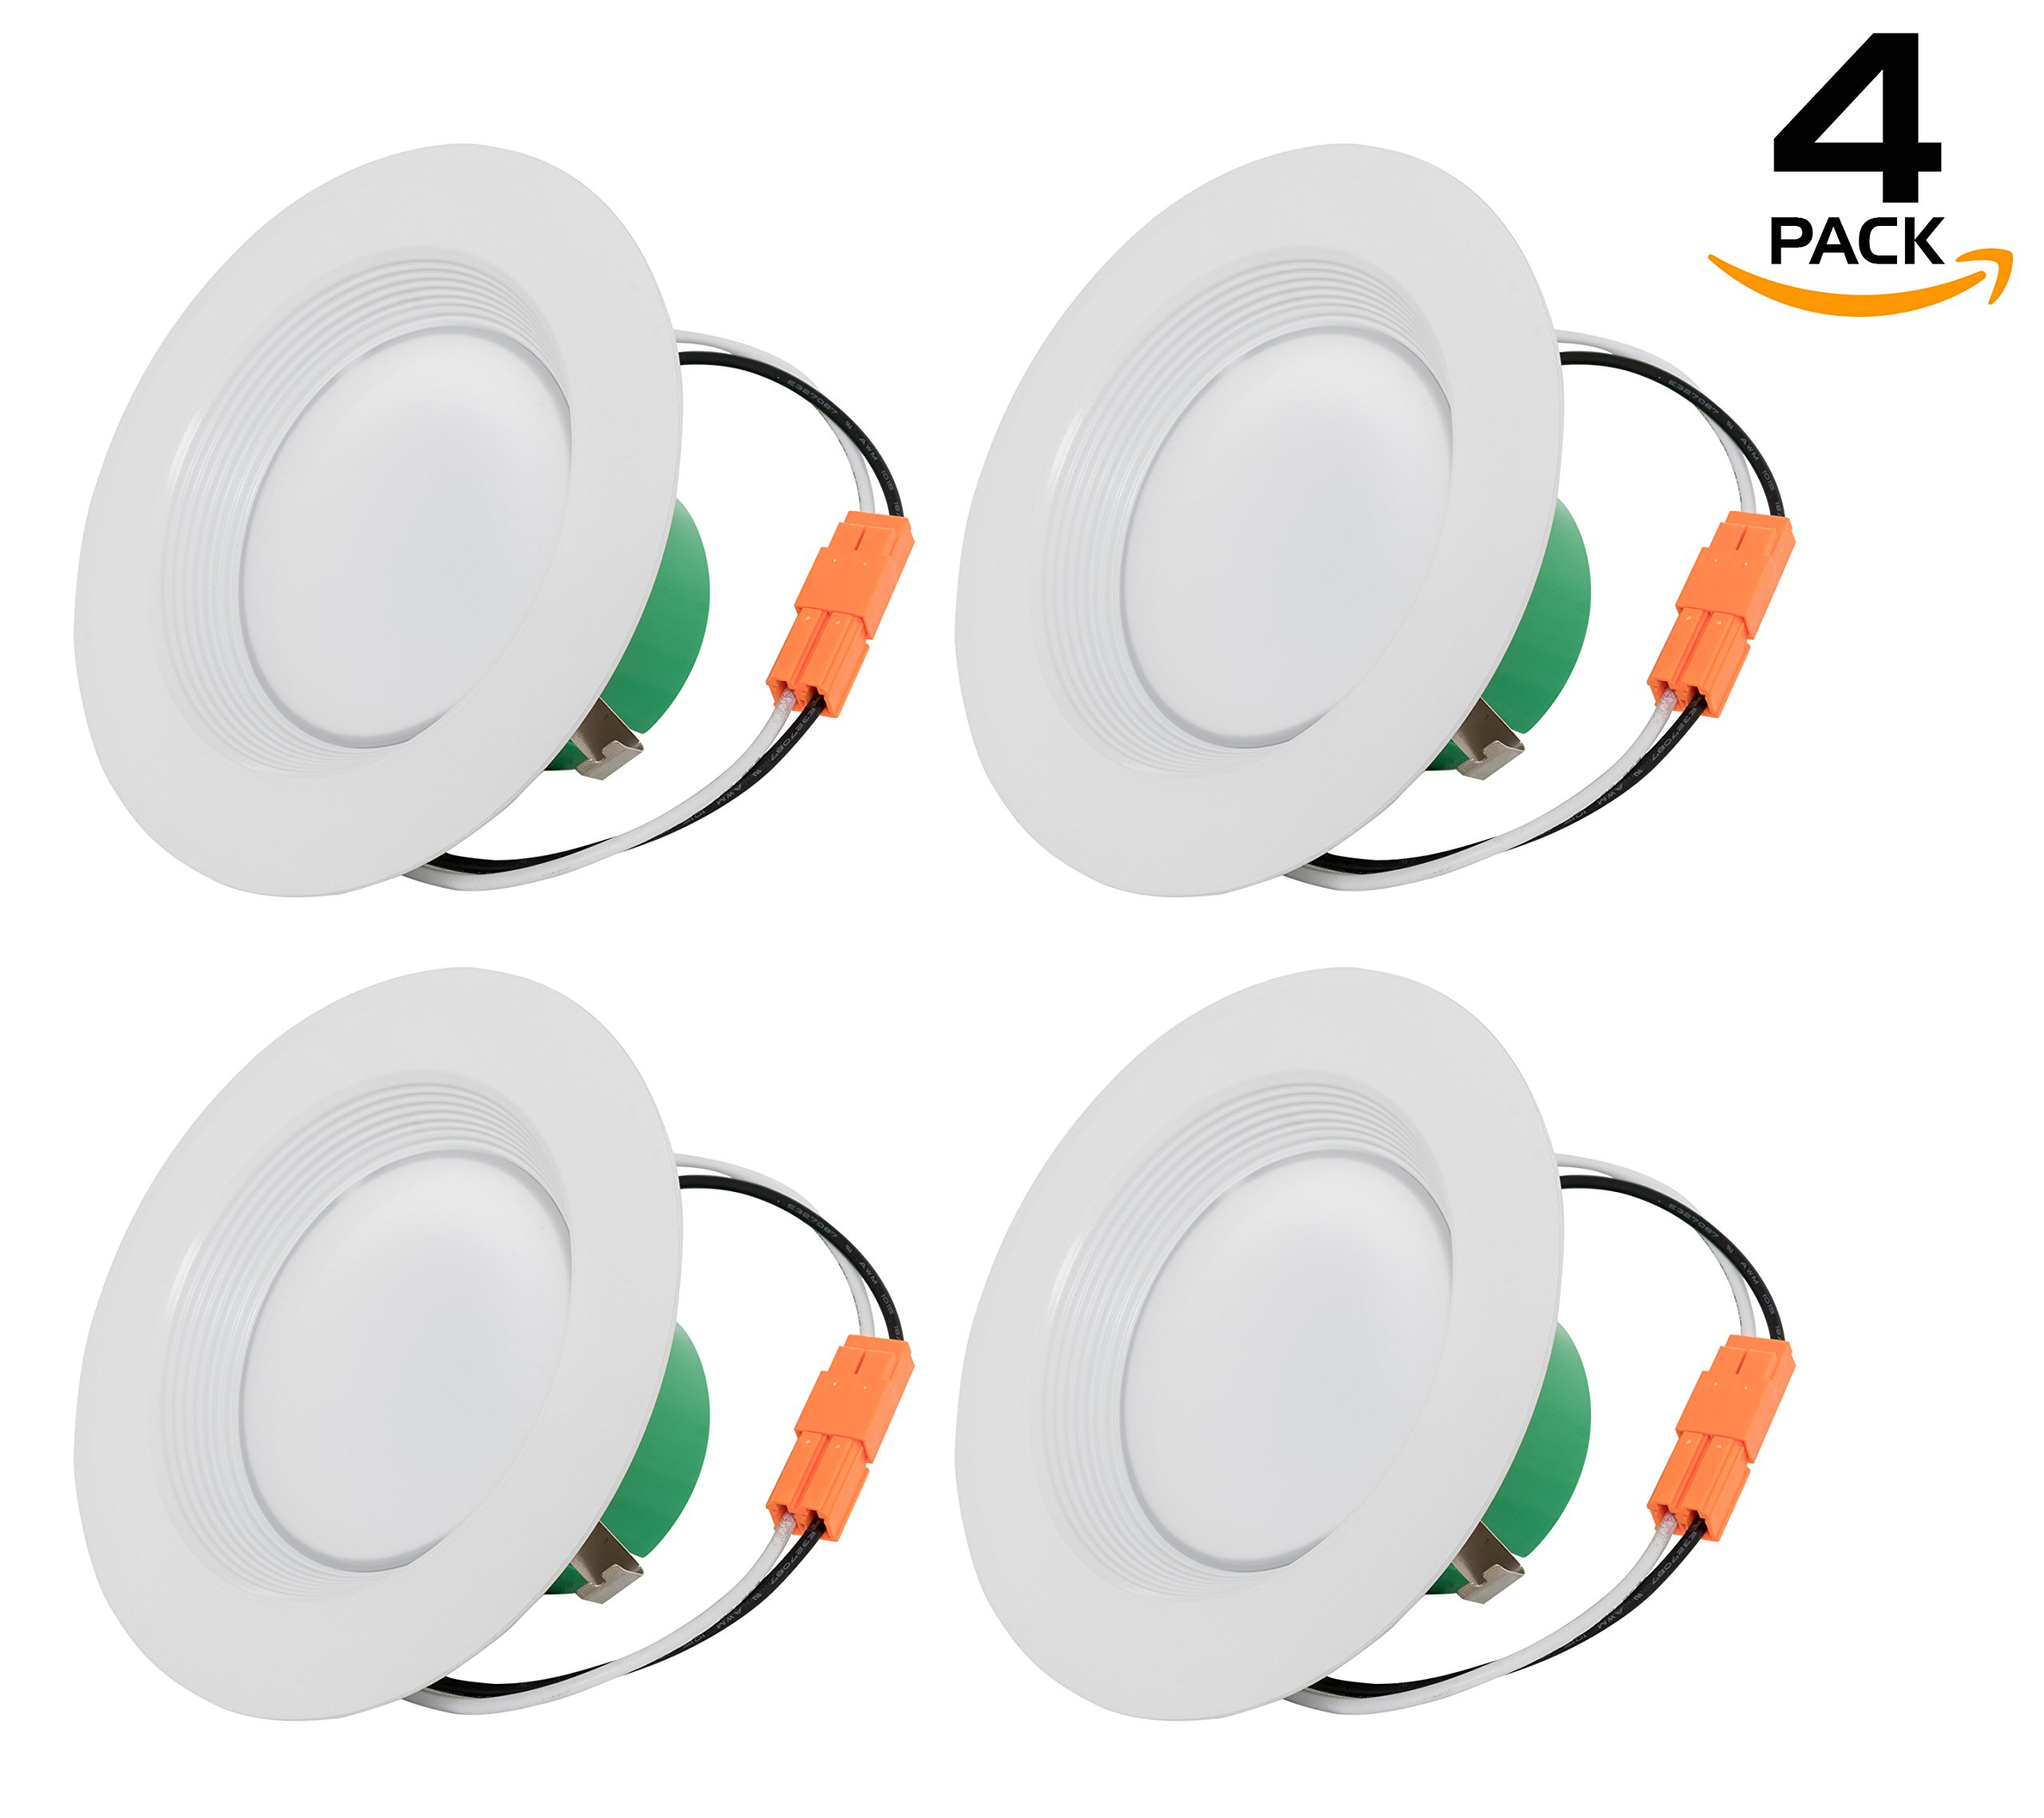 Westgate Lighting 10W 4 Inch LED Retrofit Recessed Downlight with Integrated Baffle Trim, Dimmable LED Recessed Light - Best Ceiling Light for Home, Office, Kitchen, 120V (4 Pack, 3000K Soft White)